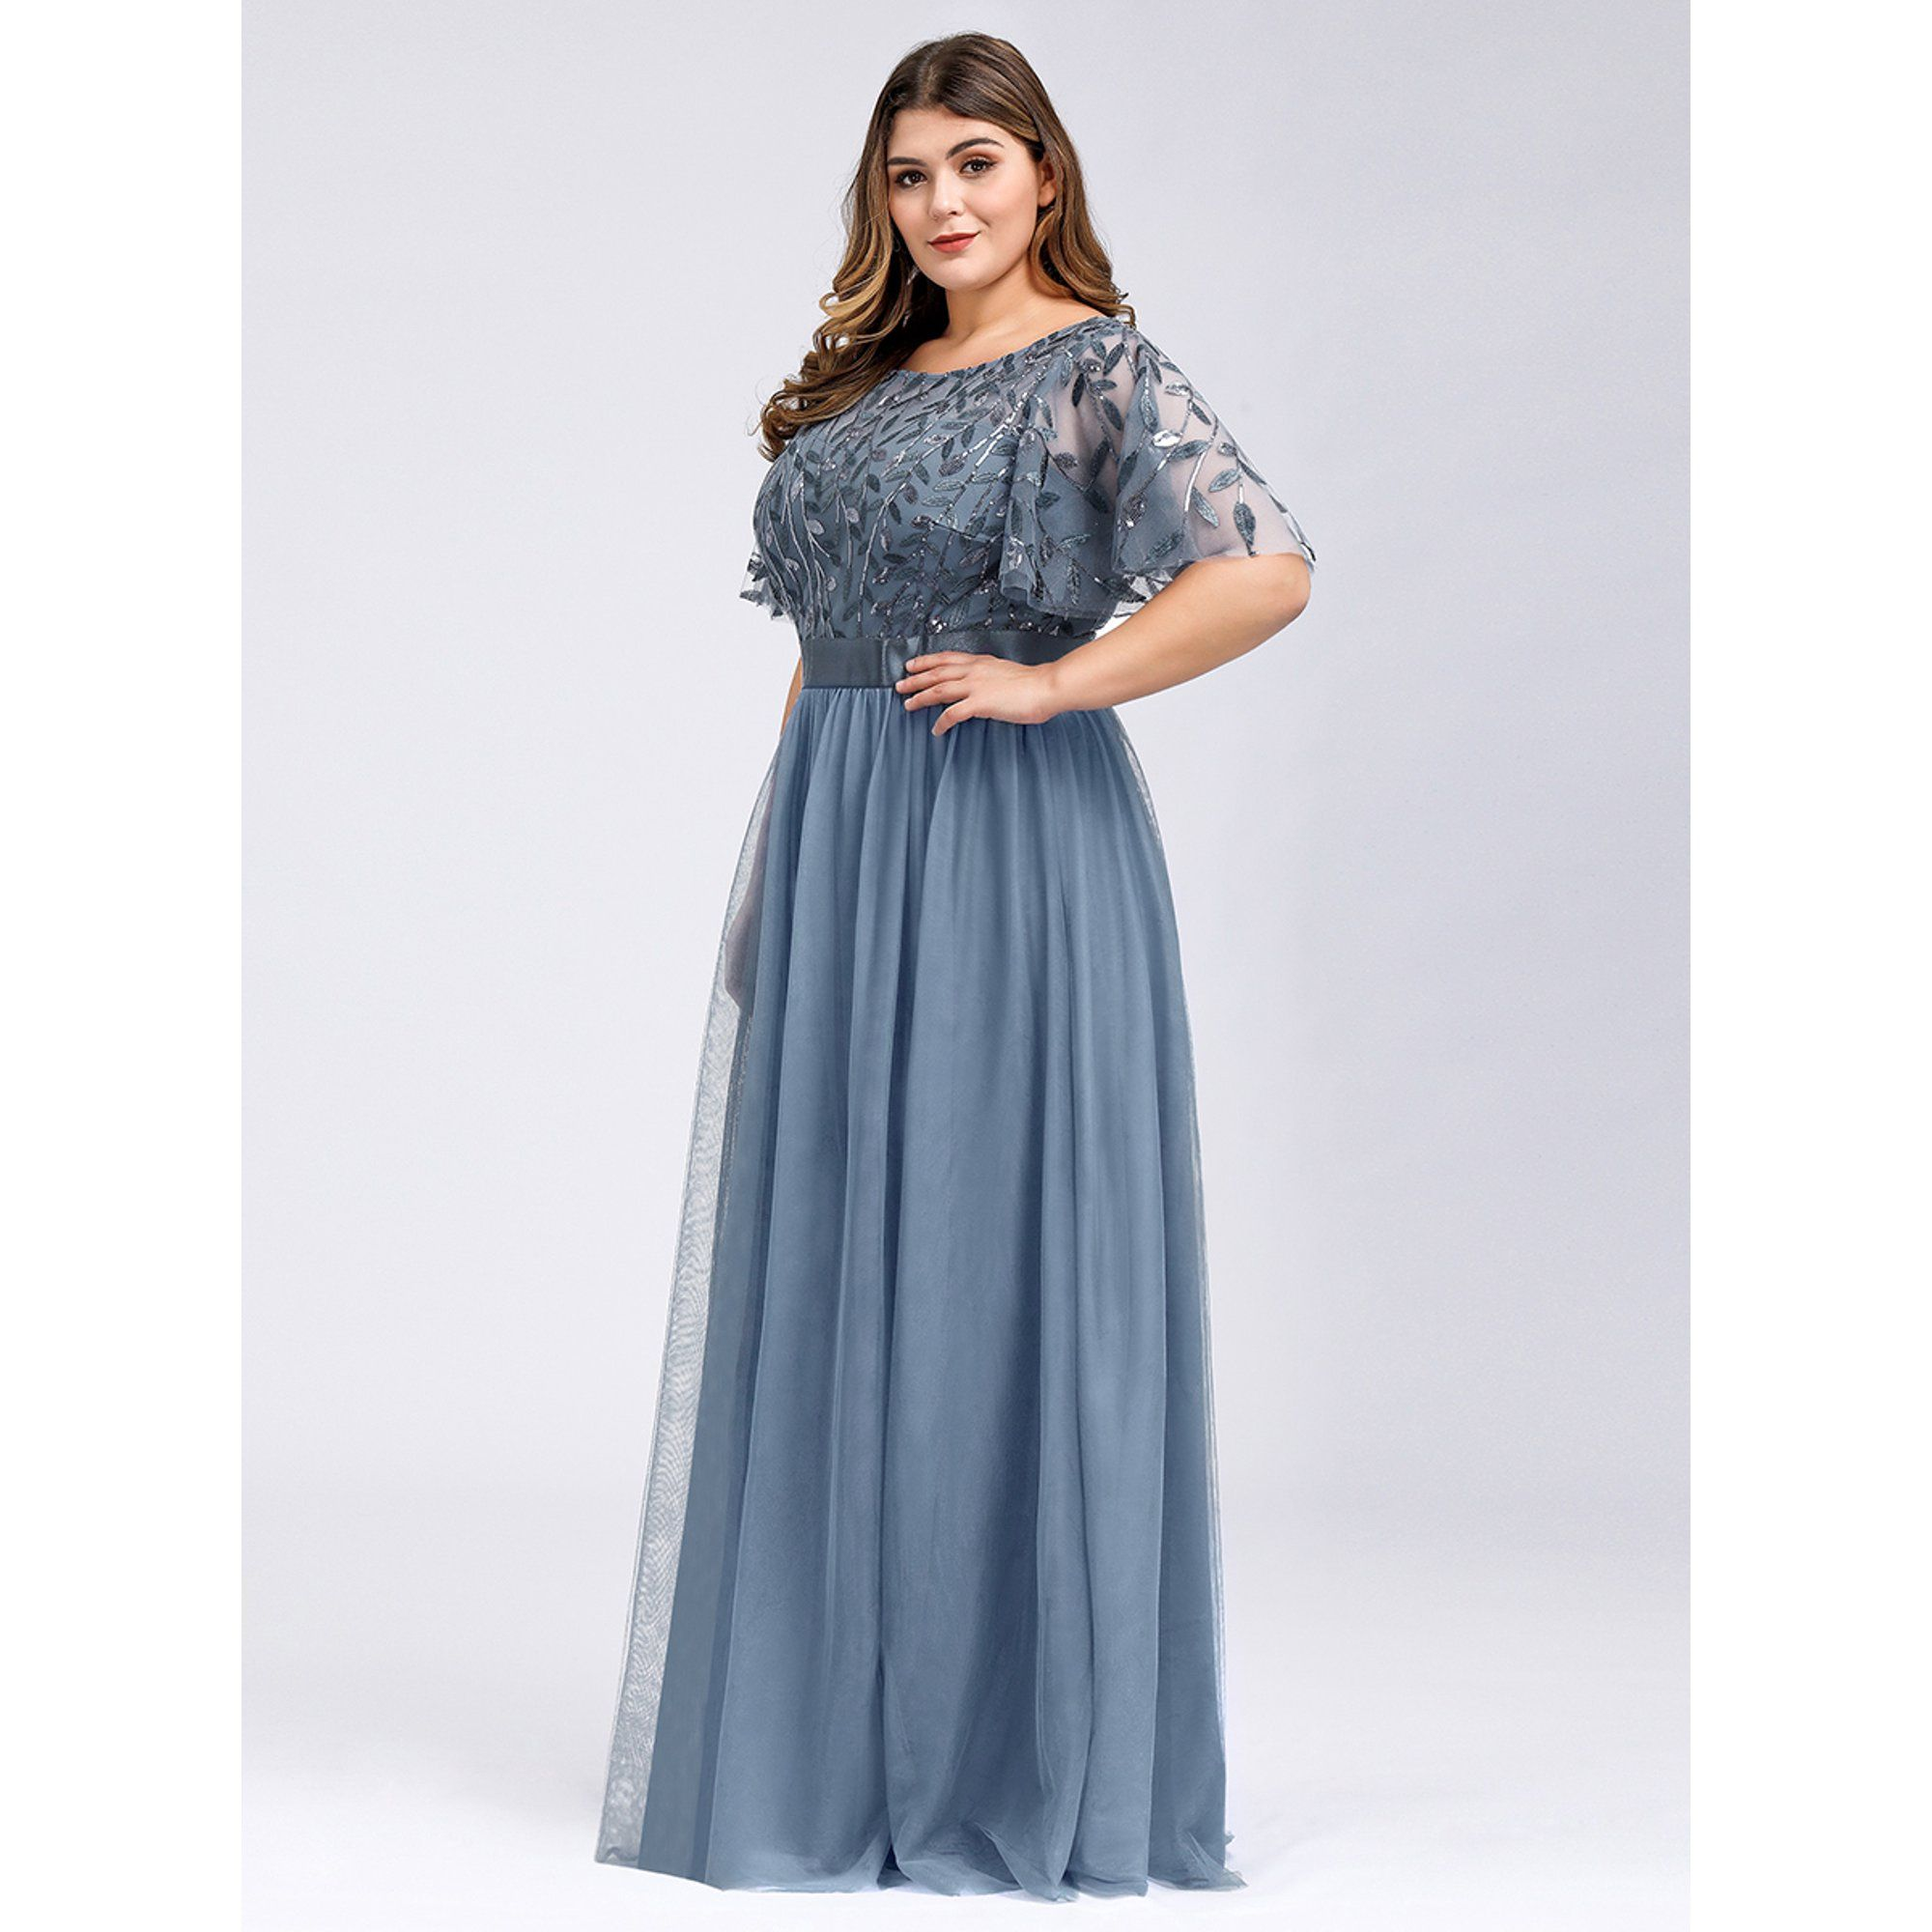 Ever Pretty Ever Pretty Womens Plus Size Elegant Mother Of The Bride Dresses For Woman 09042 Grey Us20 Walmart Com In 2021 Bridesmaid Dresses Plus Size Beautiful Evening Dresses Stunning Bridesmaid Dresses [ 2000 x 2000 Pixel ]